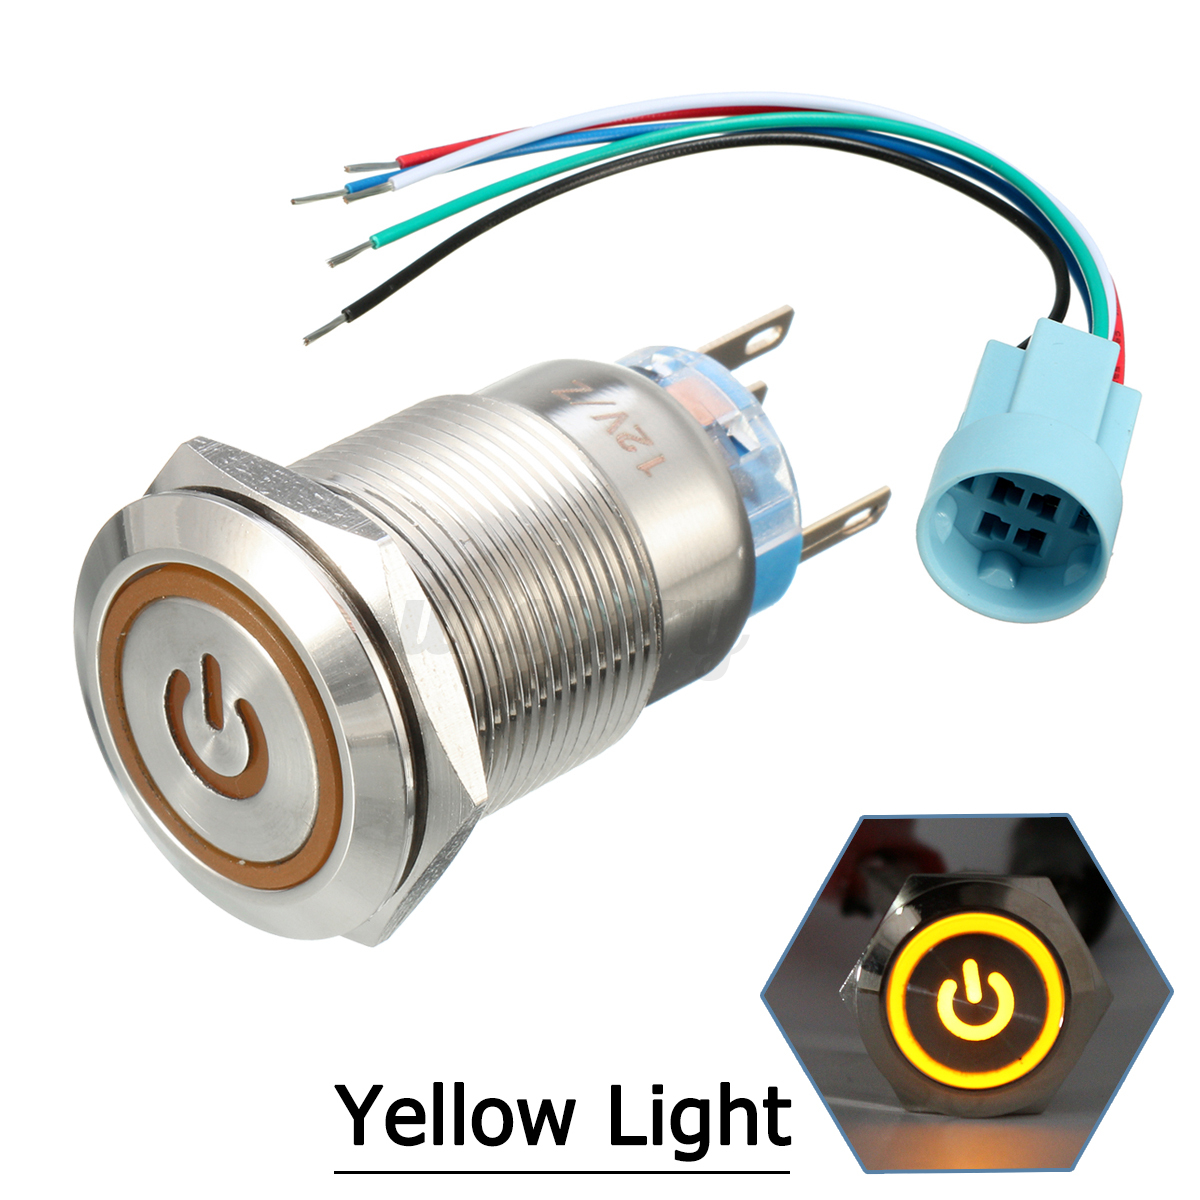 12v 19mm Car Boat Latching Momentary Push Button Switch Led Light Wiring Setup For Blue 22mm Stainless Steel